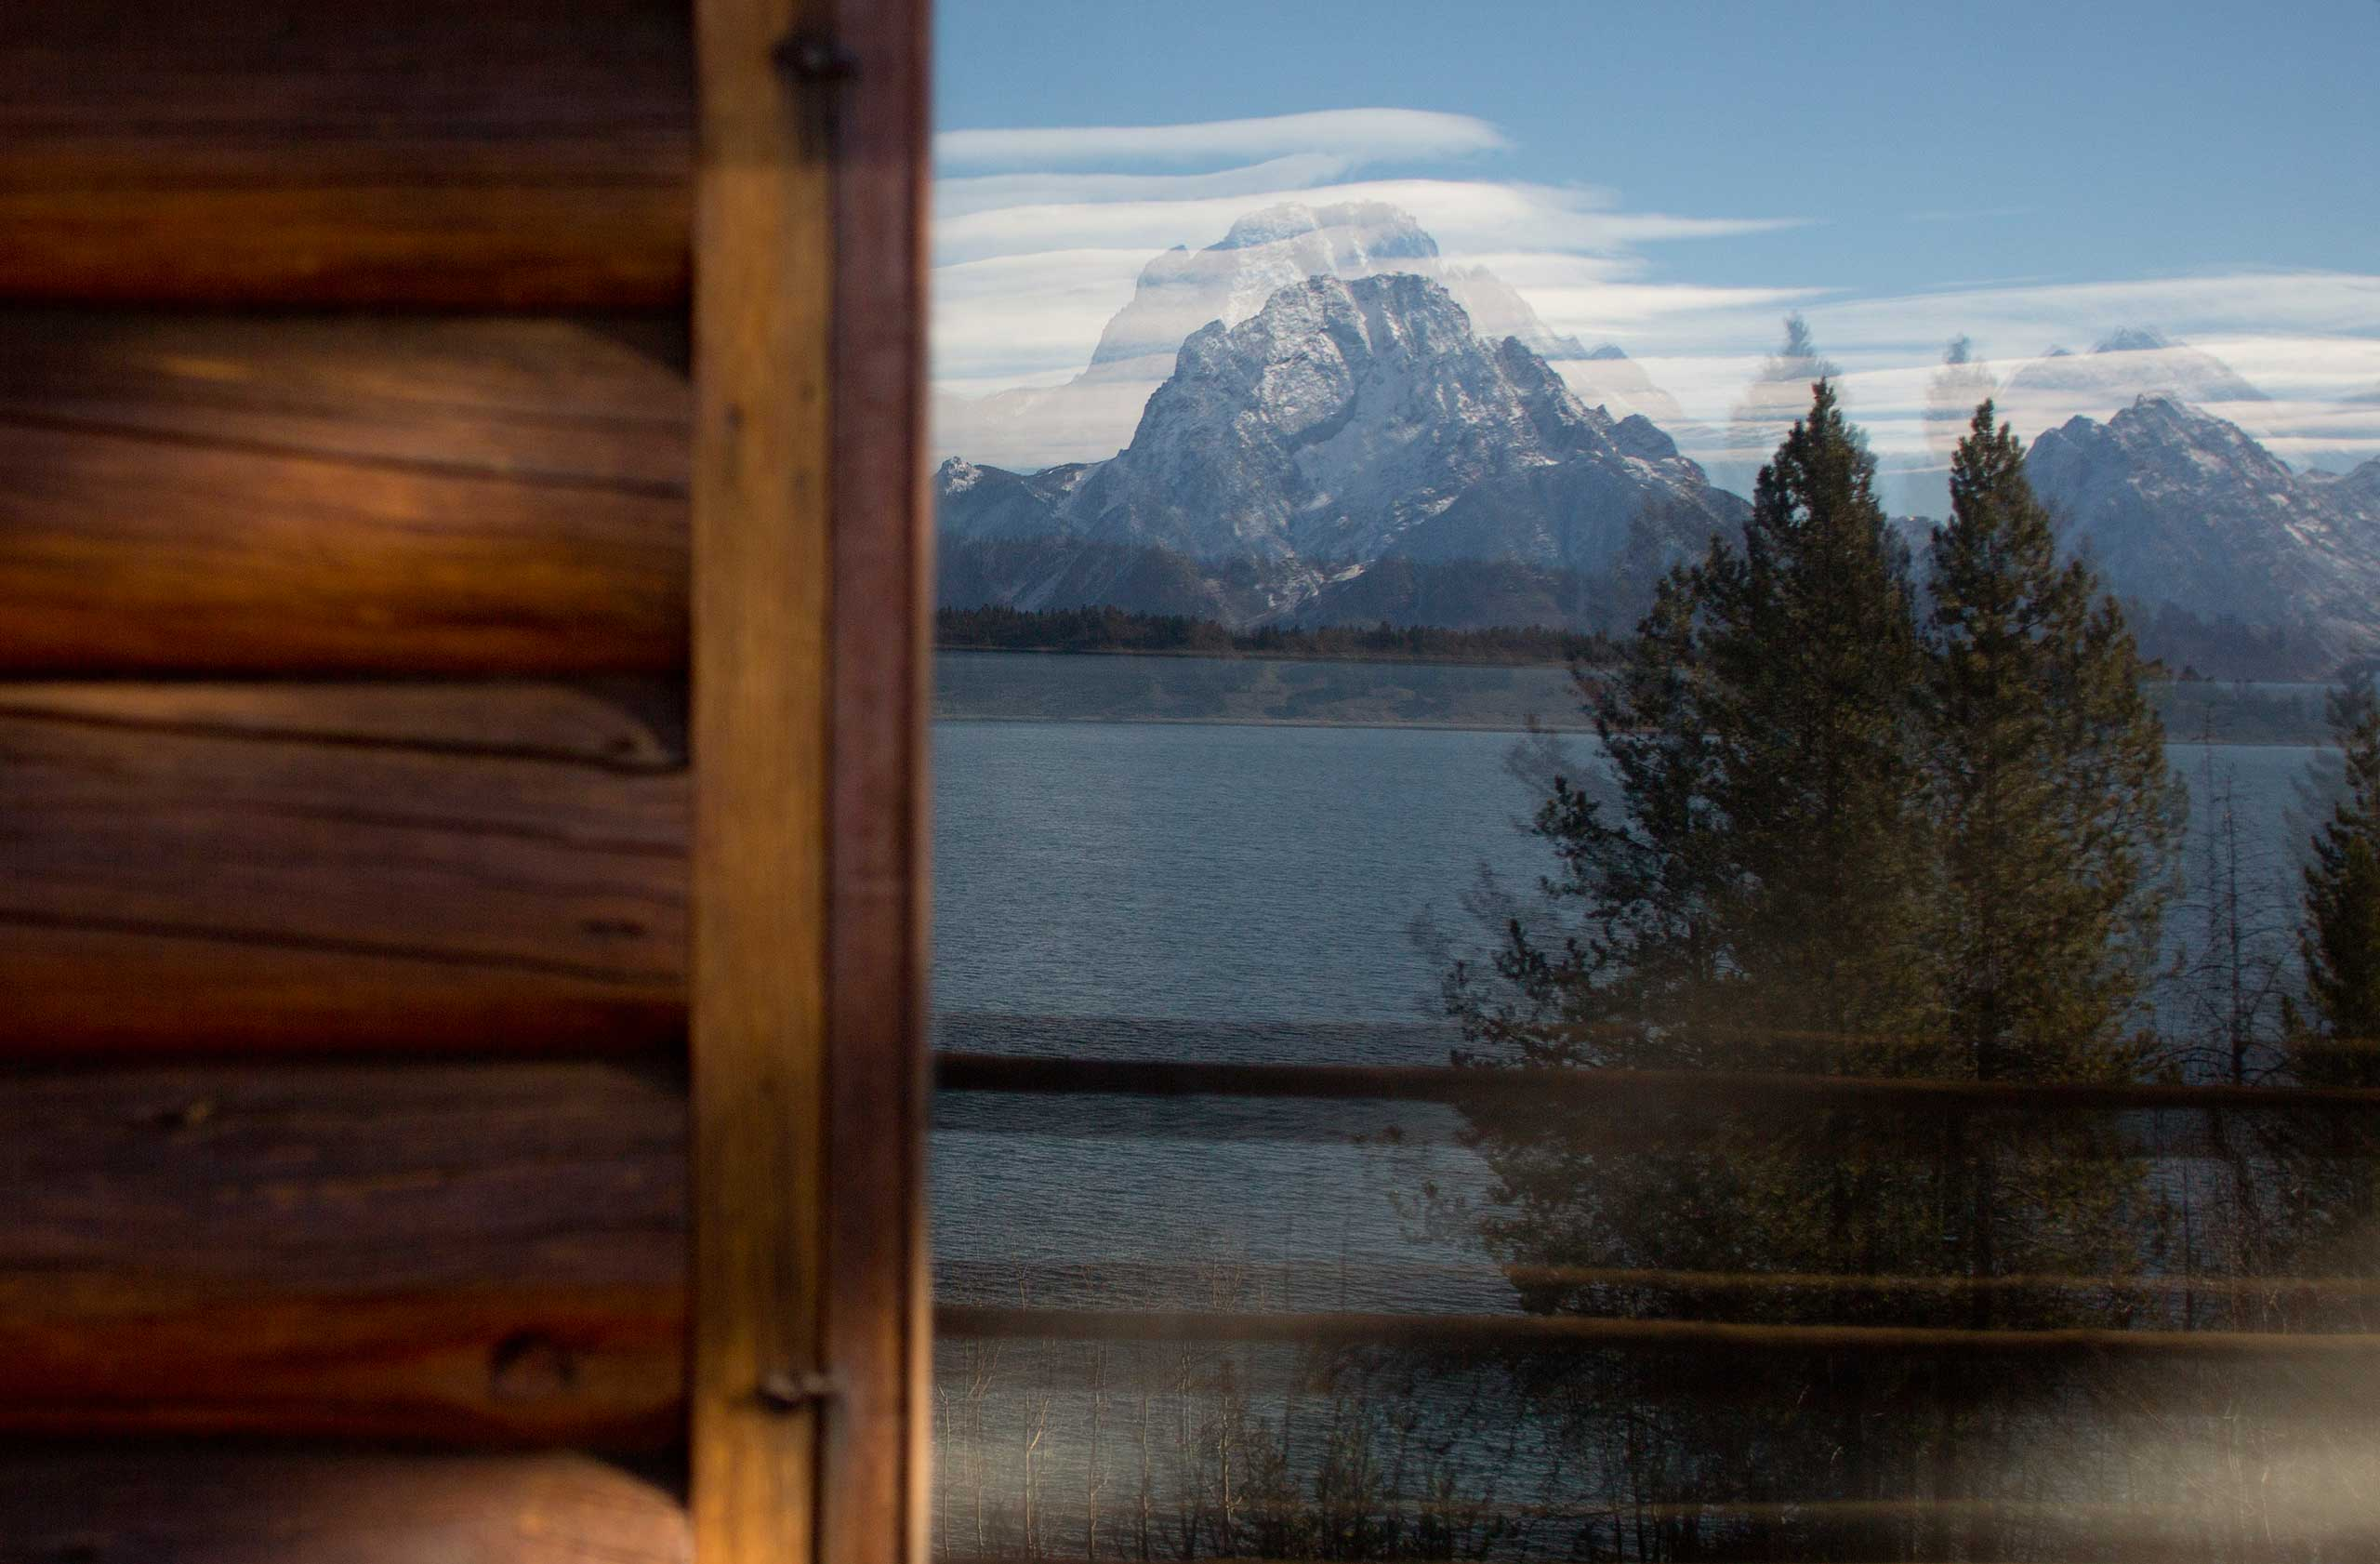 Mountains are reflected in a window of the Brinkerhoff Cabin on the shore of Jackson Lake in Grand Teton National Park outside Jackson, Wyo. on Oct. 28, 2014.